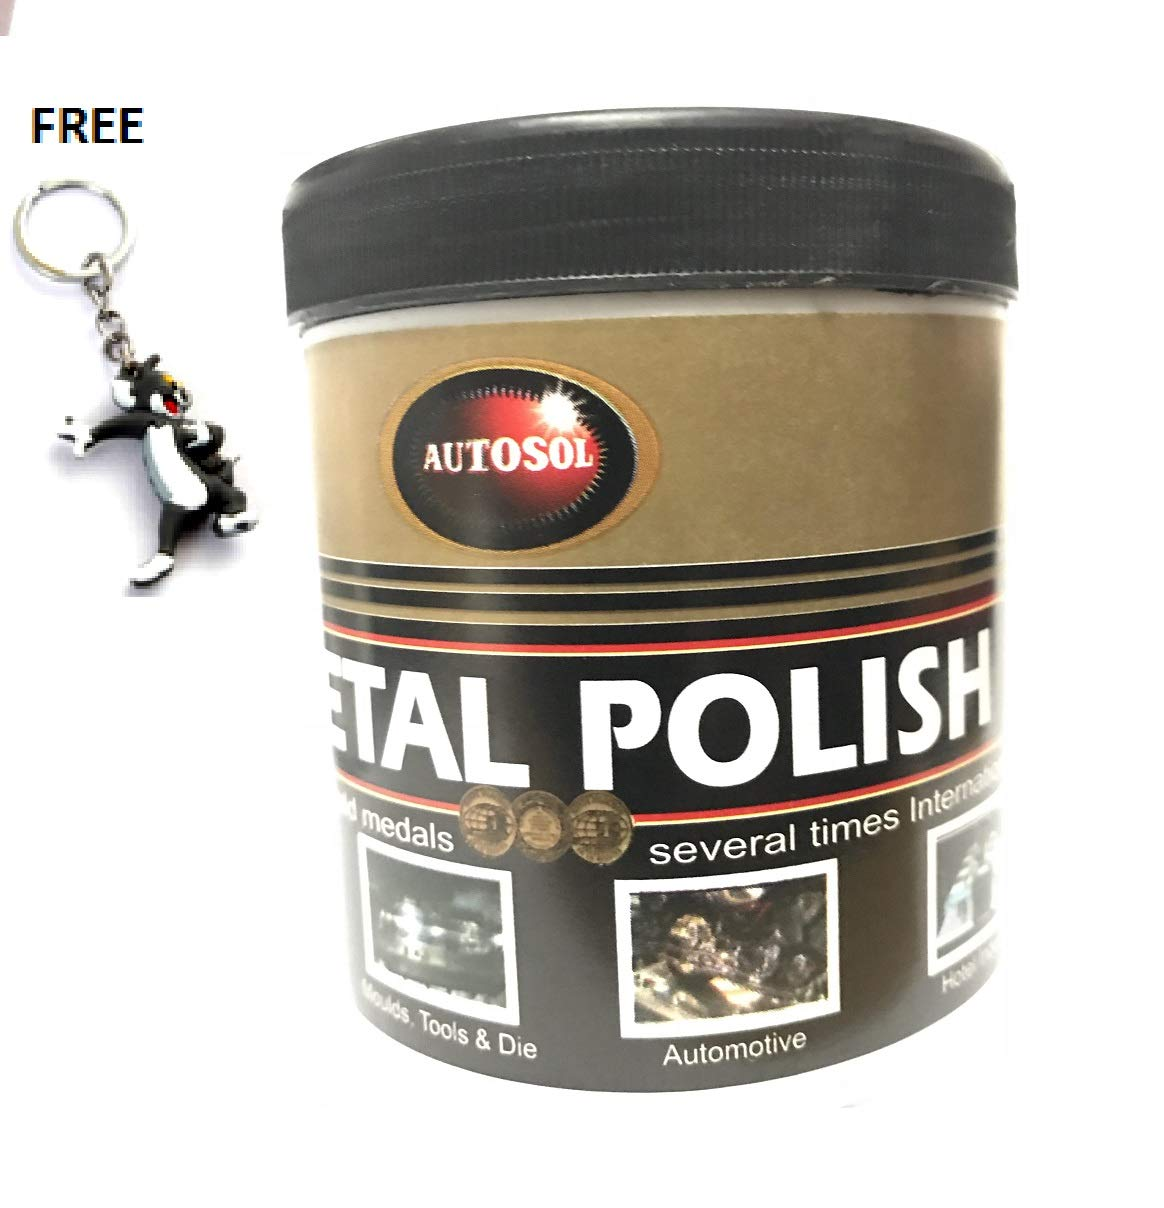 AUTOSOL - Metal Polish - 8.81 Oz - Cleans, Restore, Remove Rust - Widely Used in Household Metal Items, Moulds, Tools and Die, Automotive & Hotel Industry - FREE 3D Keychain with Every Order.